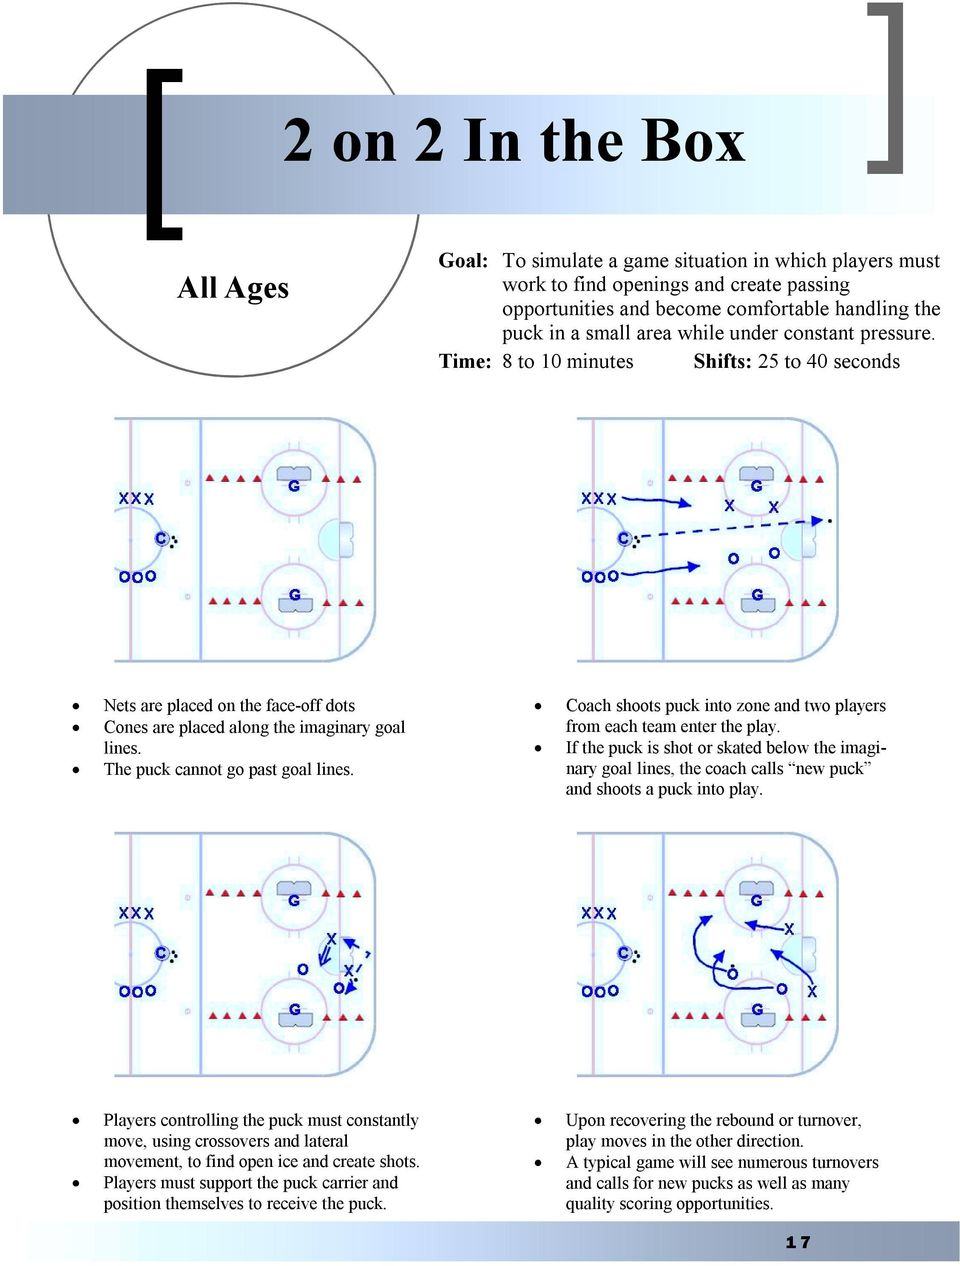 Coach shoots puck into zone and two players from each team enter the play. If the puck is shot or skated below the imaginary goal lines, the coach calls new puck and shoots a puck into play.